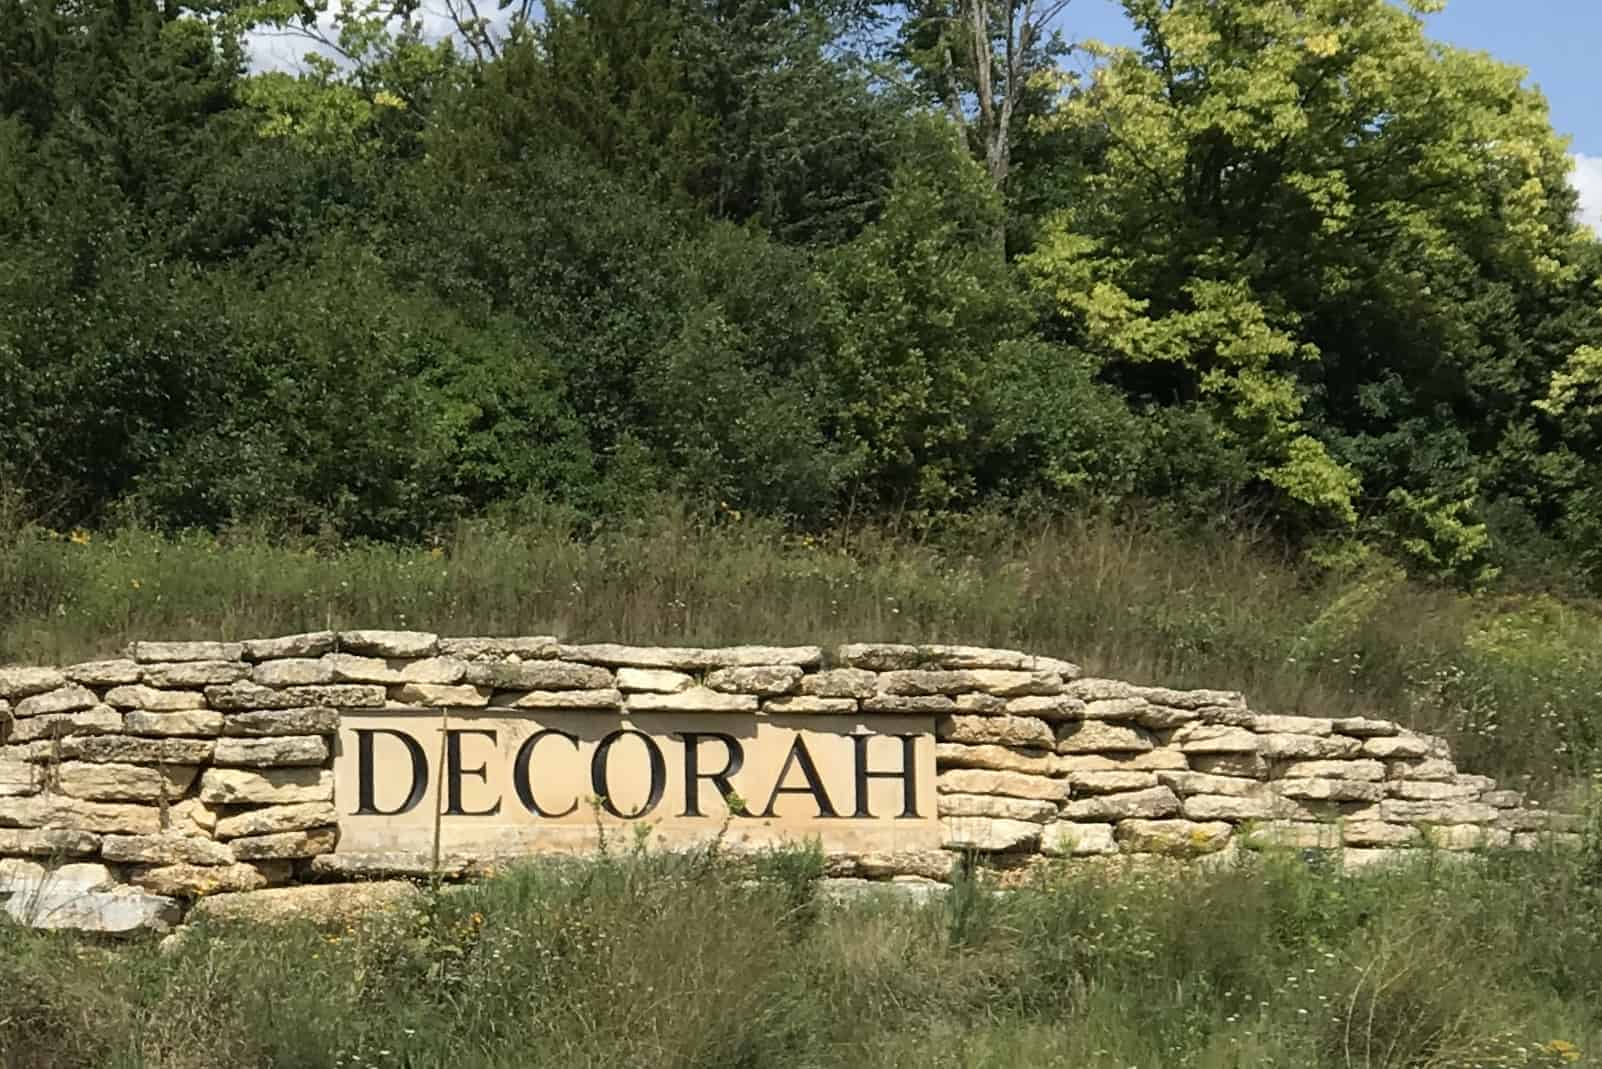 Foodventurous: Decorah, Iowa